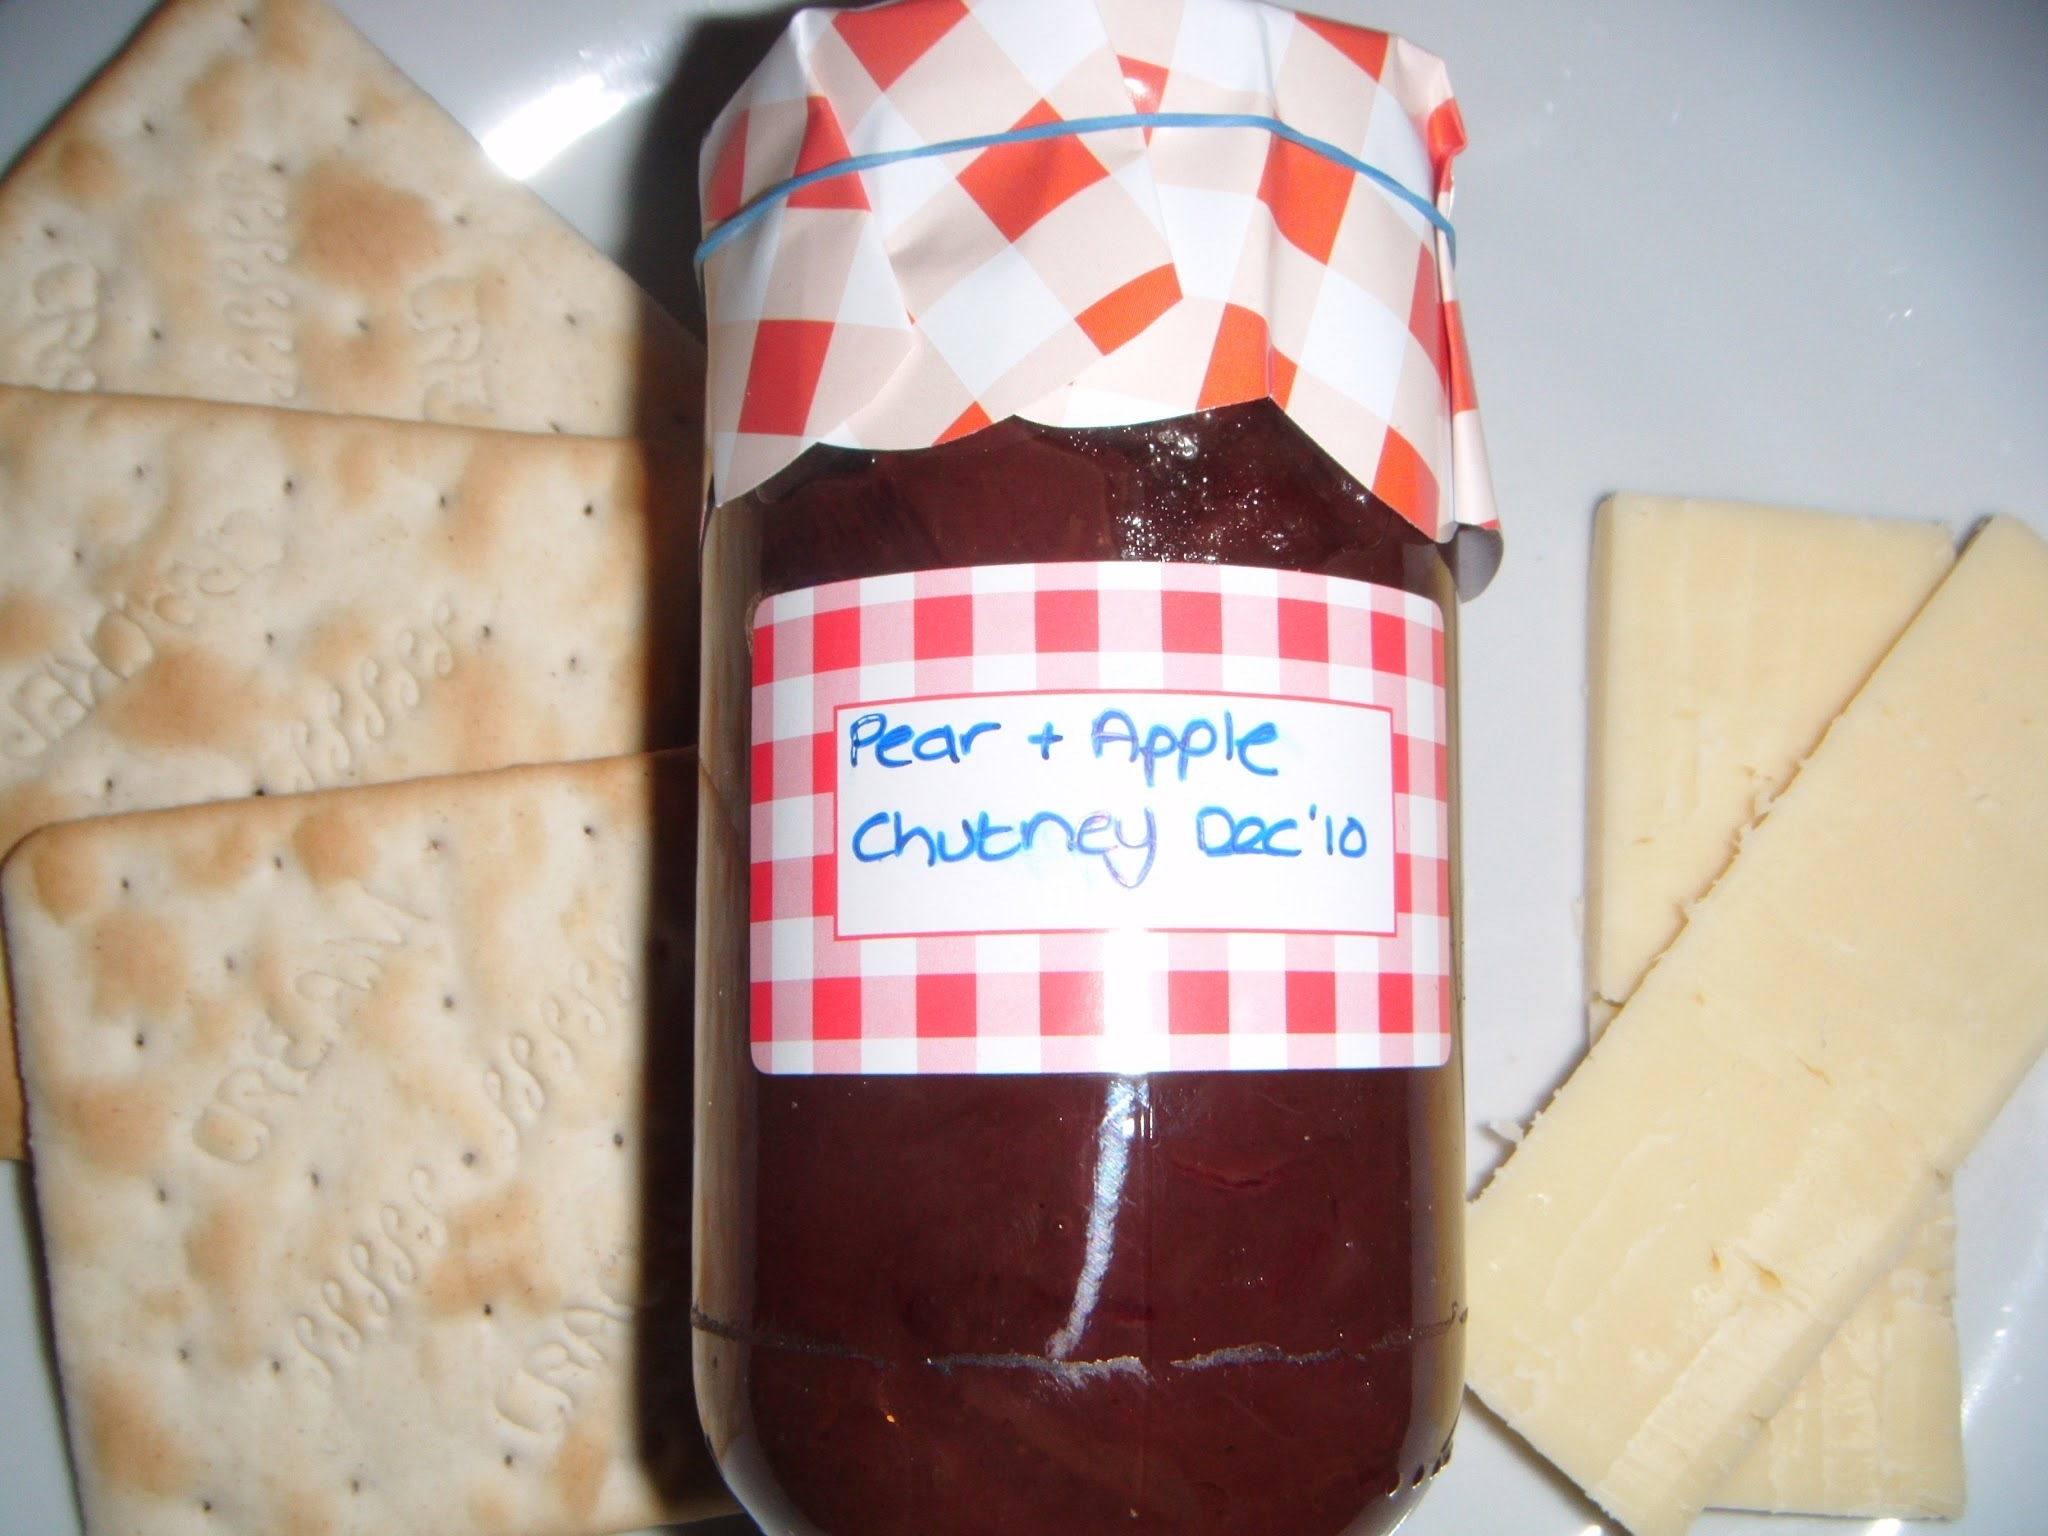 Apple & Pear Chutney